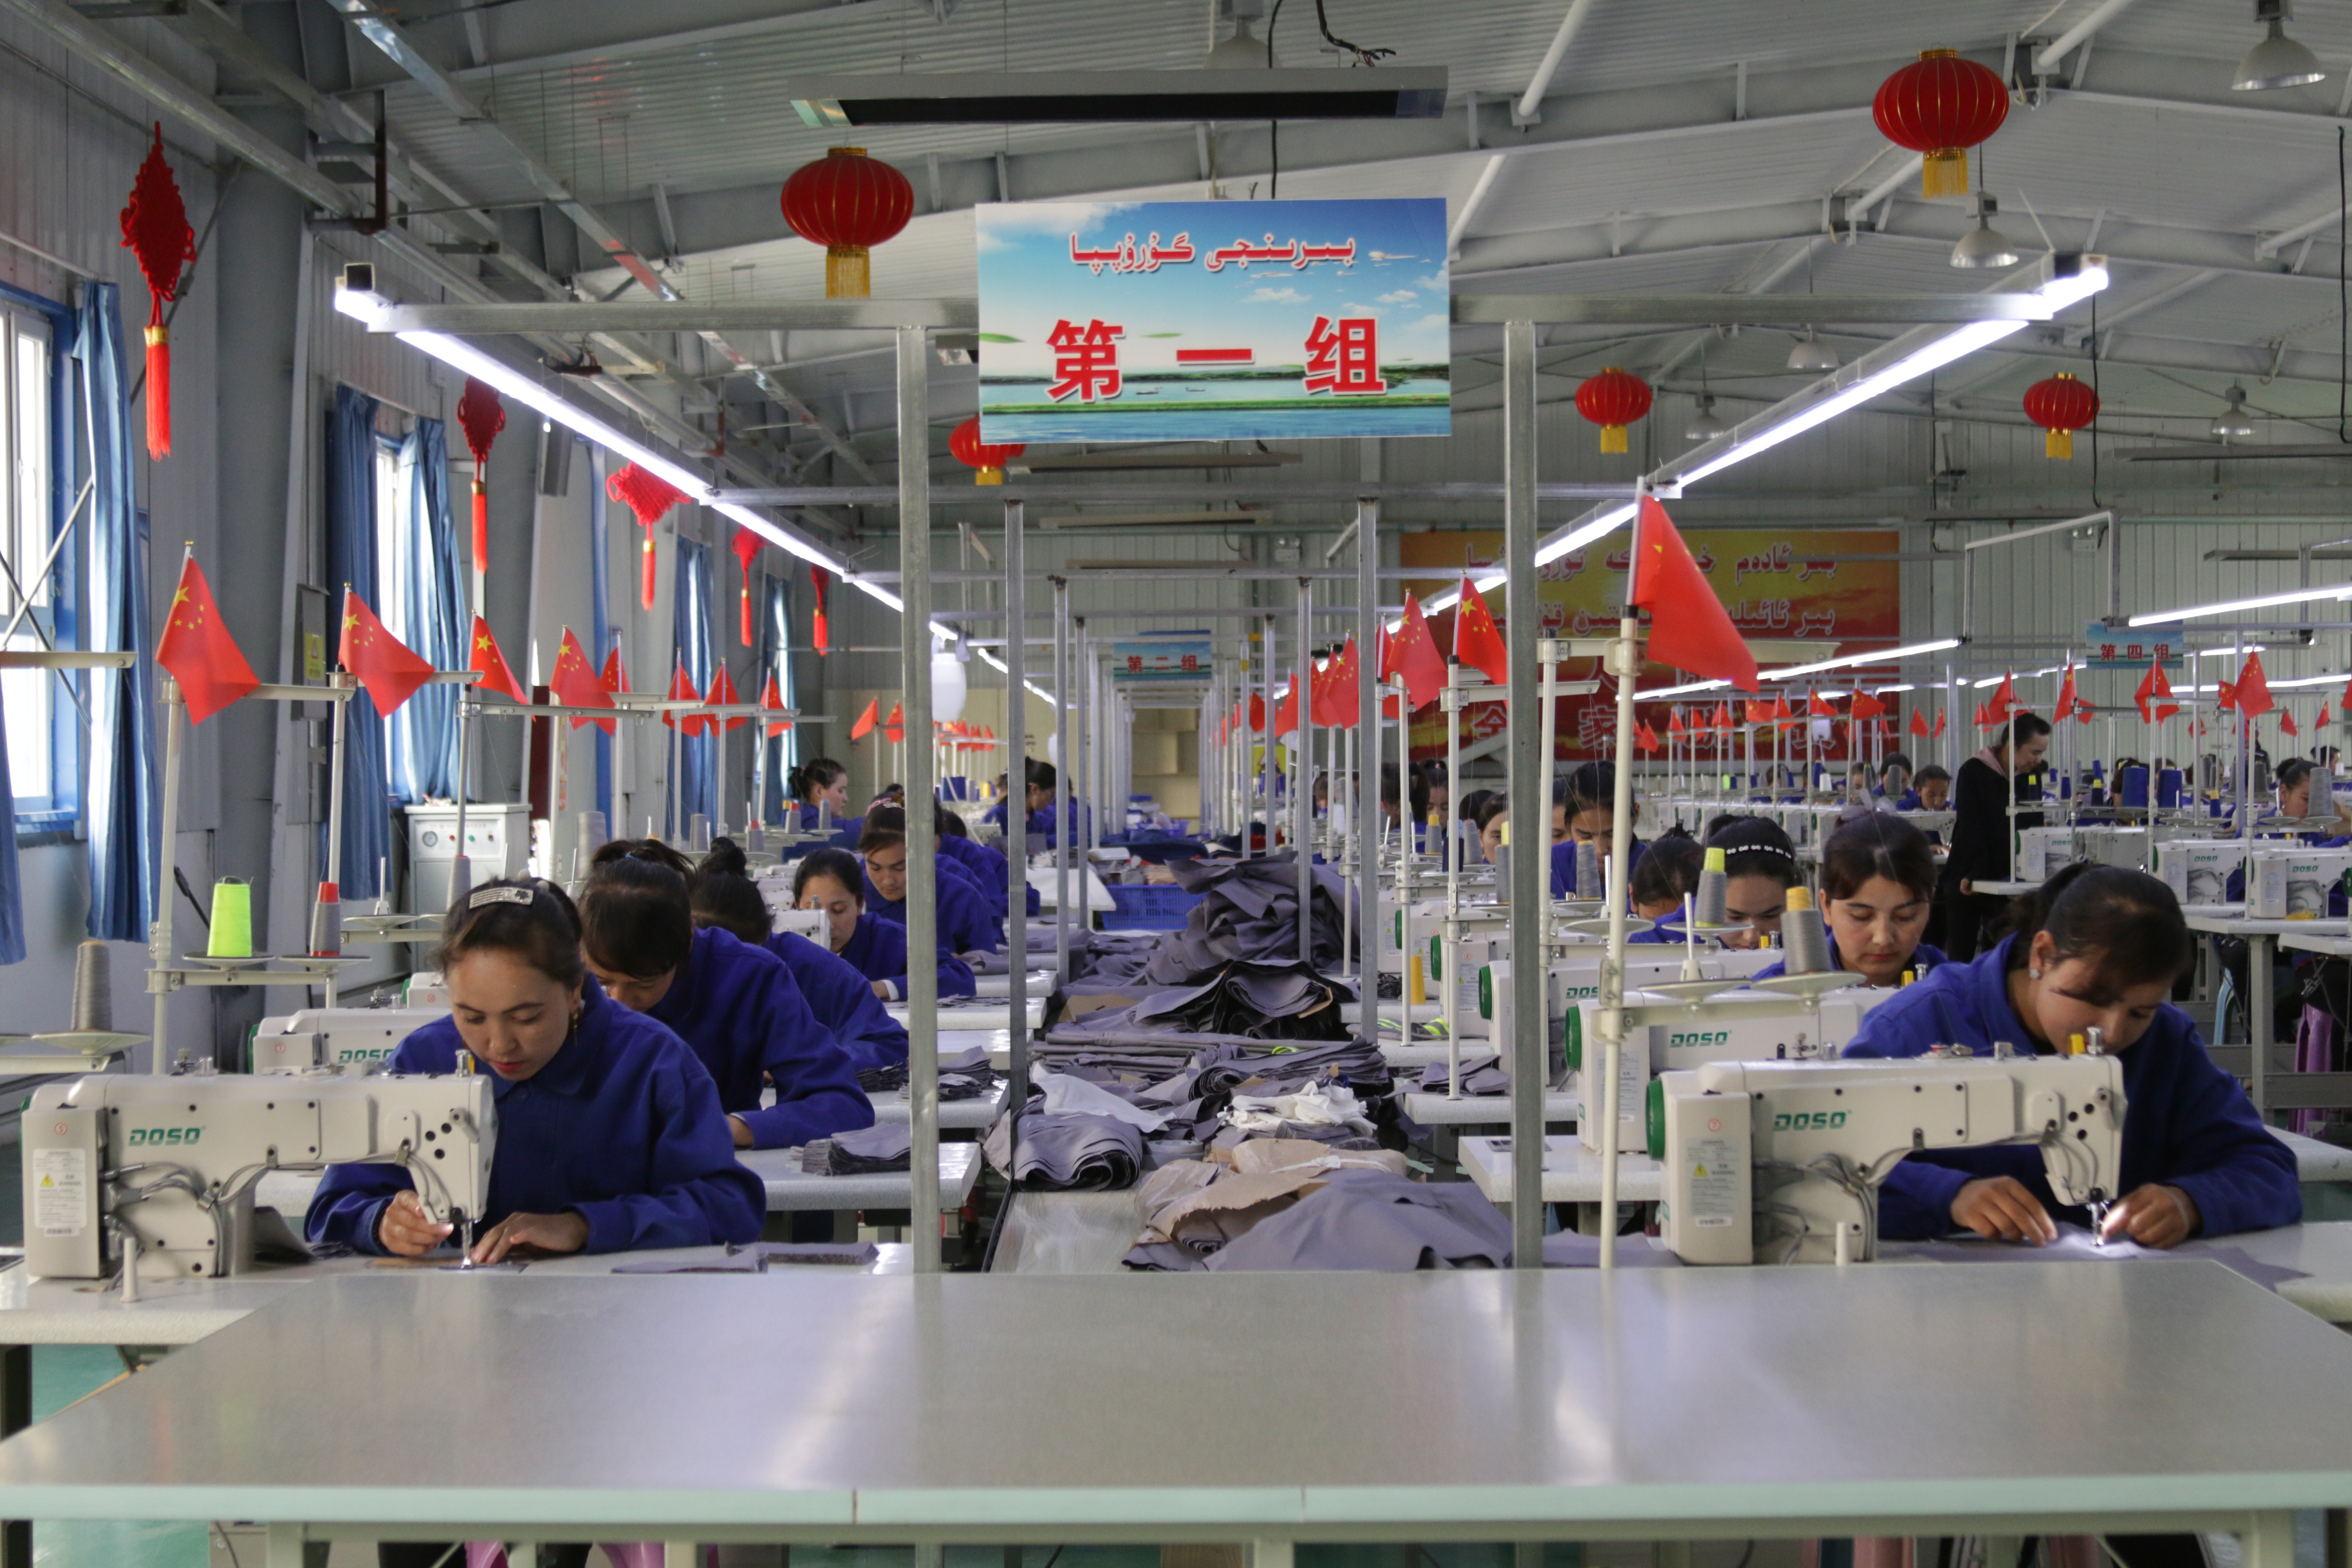 While the US and China figure out whether they agreed to rollback tariffs or didn't, China's apparel sector seems to be faring just fine.